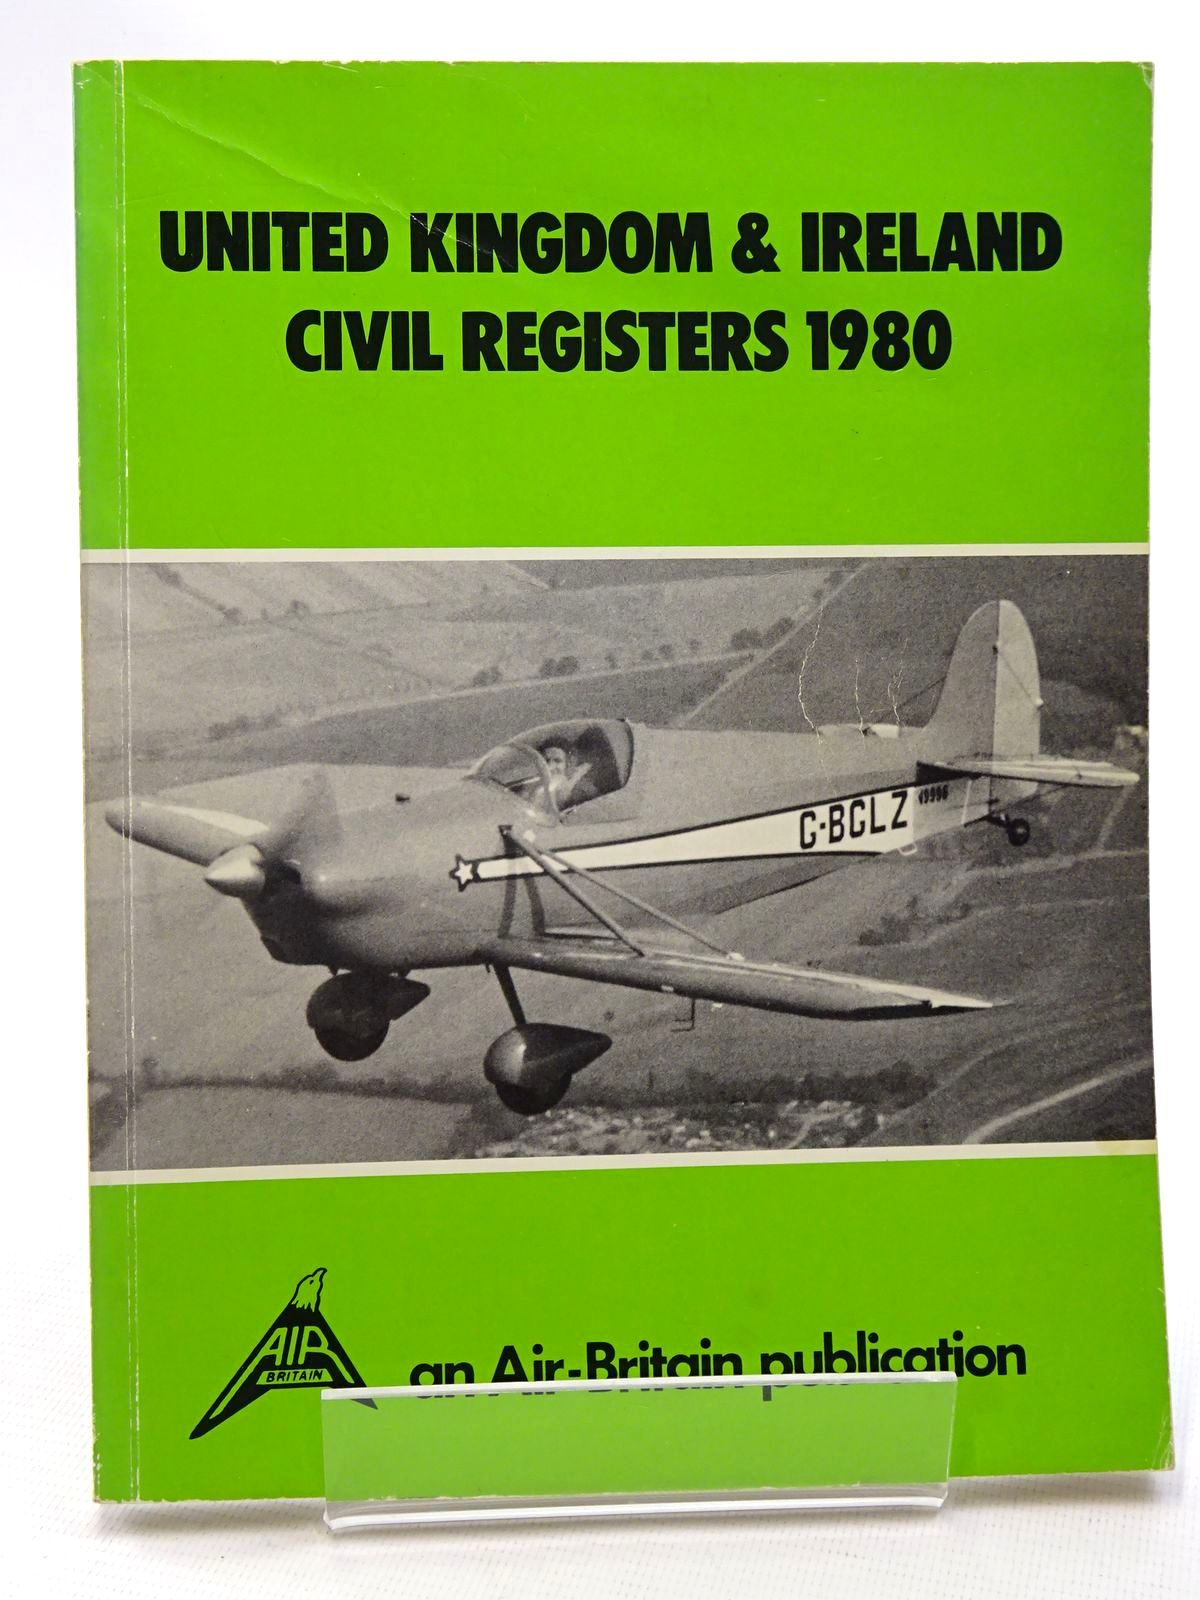 Photo of UNITED KINGDOM & IRELAND CIVIL REGISTERS 1980 written by Martin, Bernard published by Air-Britain (Historians) Ltd. (STOCK CODE: 1610403)  for sale by Stella & Rose's Books